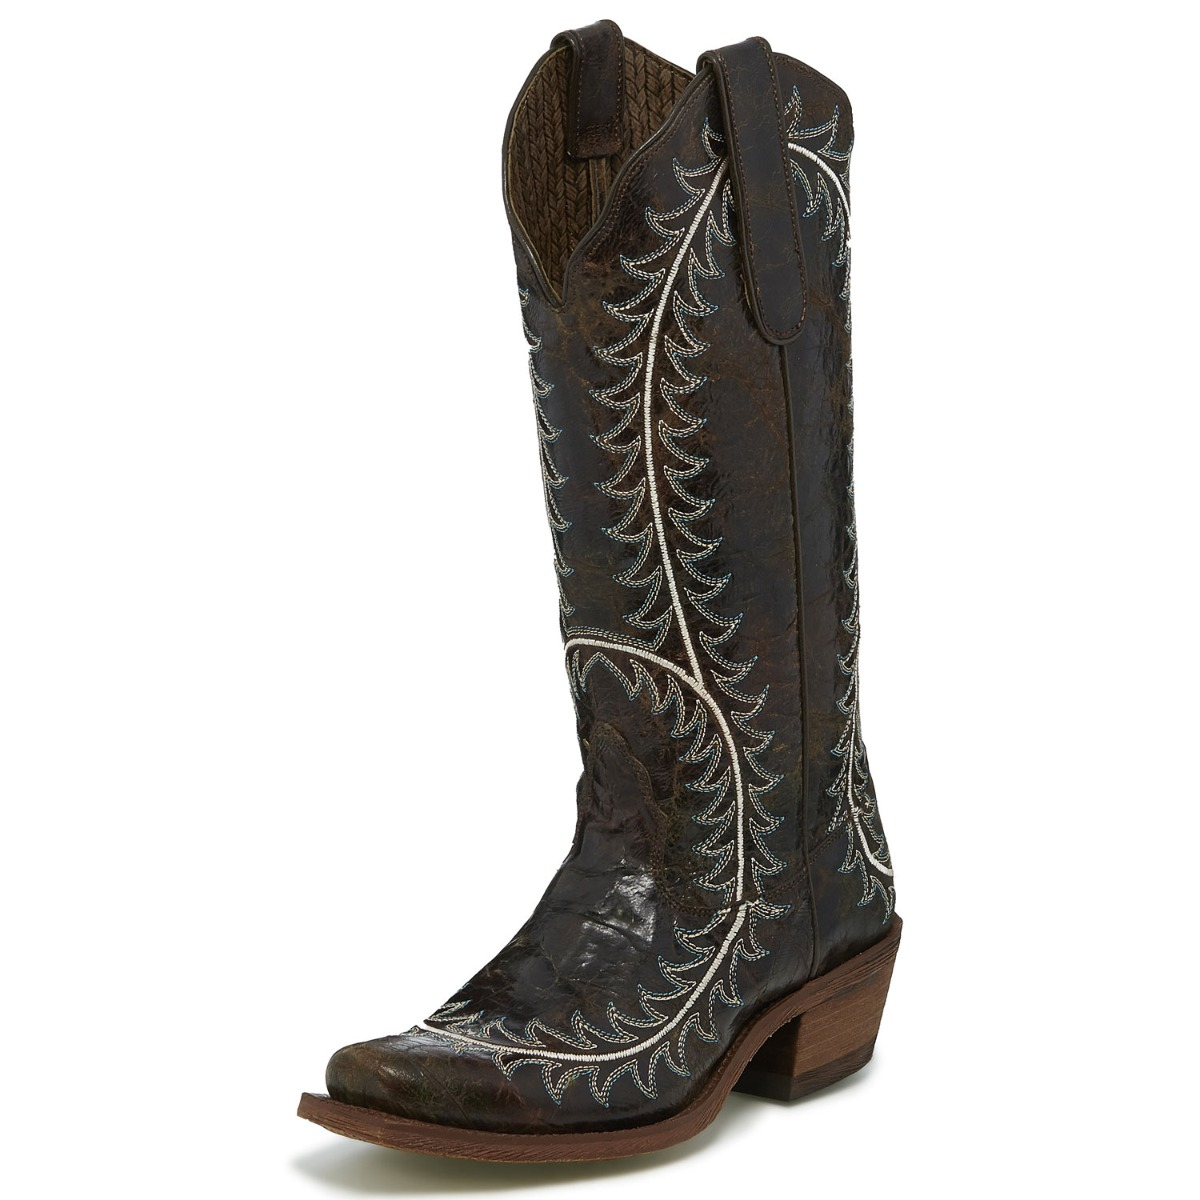 Nocona Women's Dark Brown Narrow Square Toe Western Boots